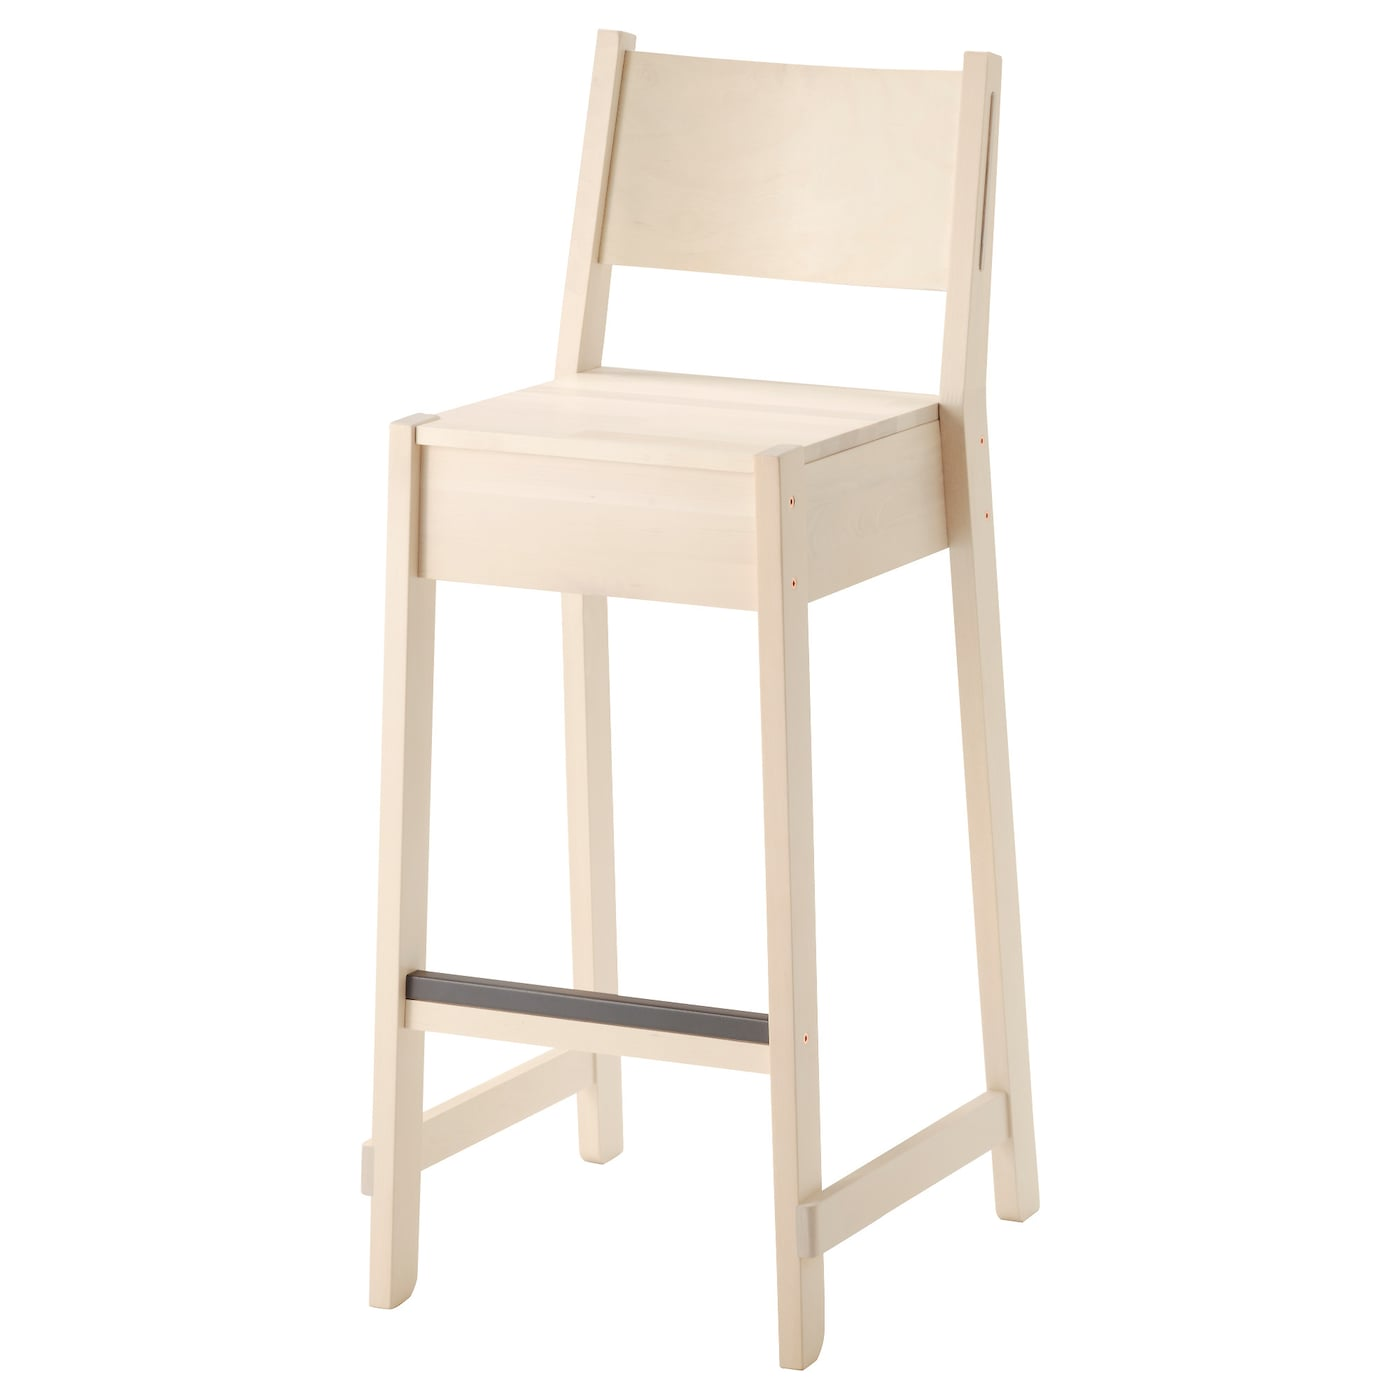 NORR197KER Bar stool with backrest White birch 74 cm IKEA : norrC3A5ker bar stool with backrest white birch0440360pe592356s5 from www.ikea.com size 2000 x 2000 jpeg 148kB